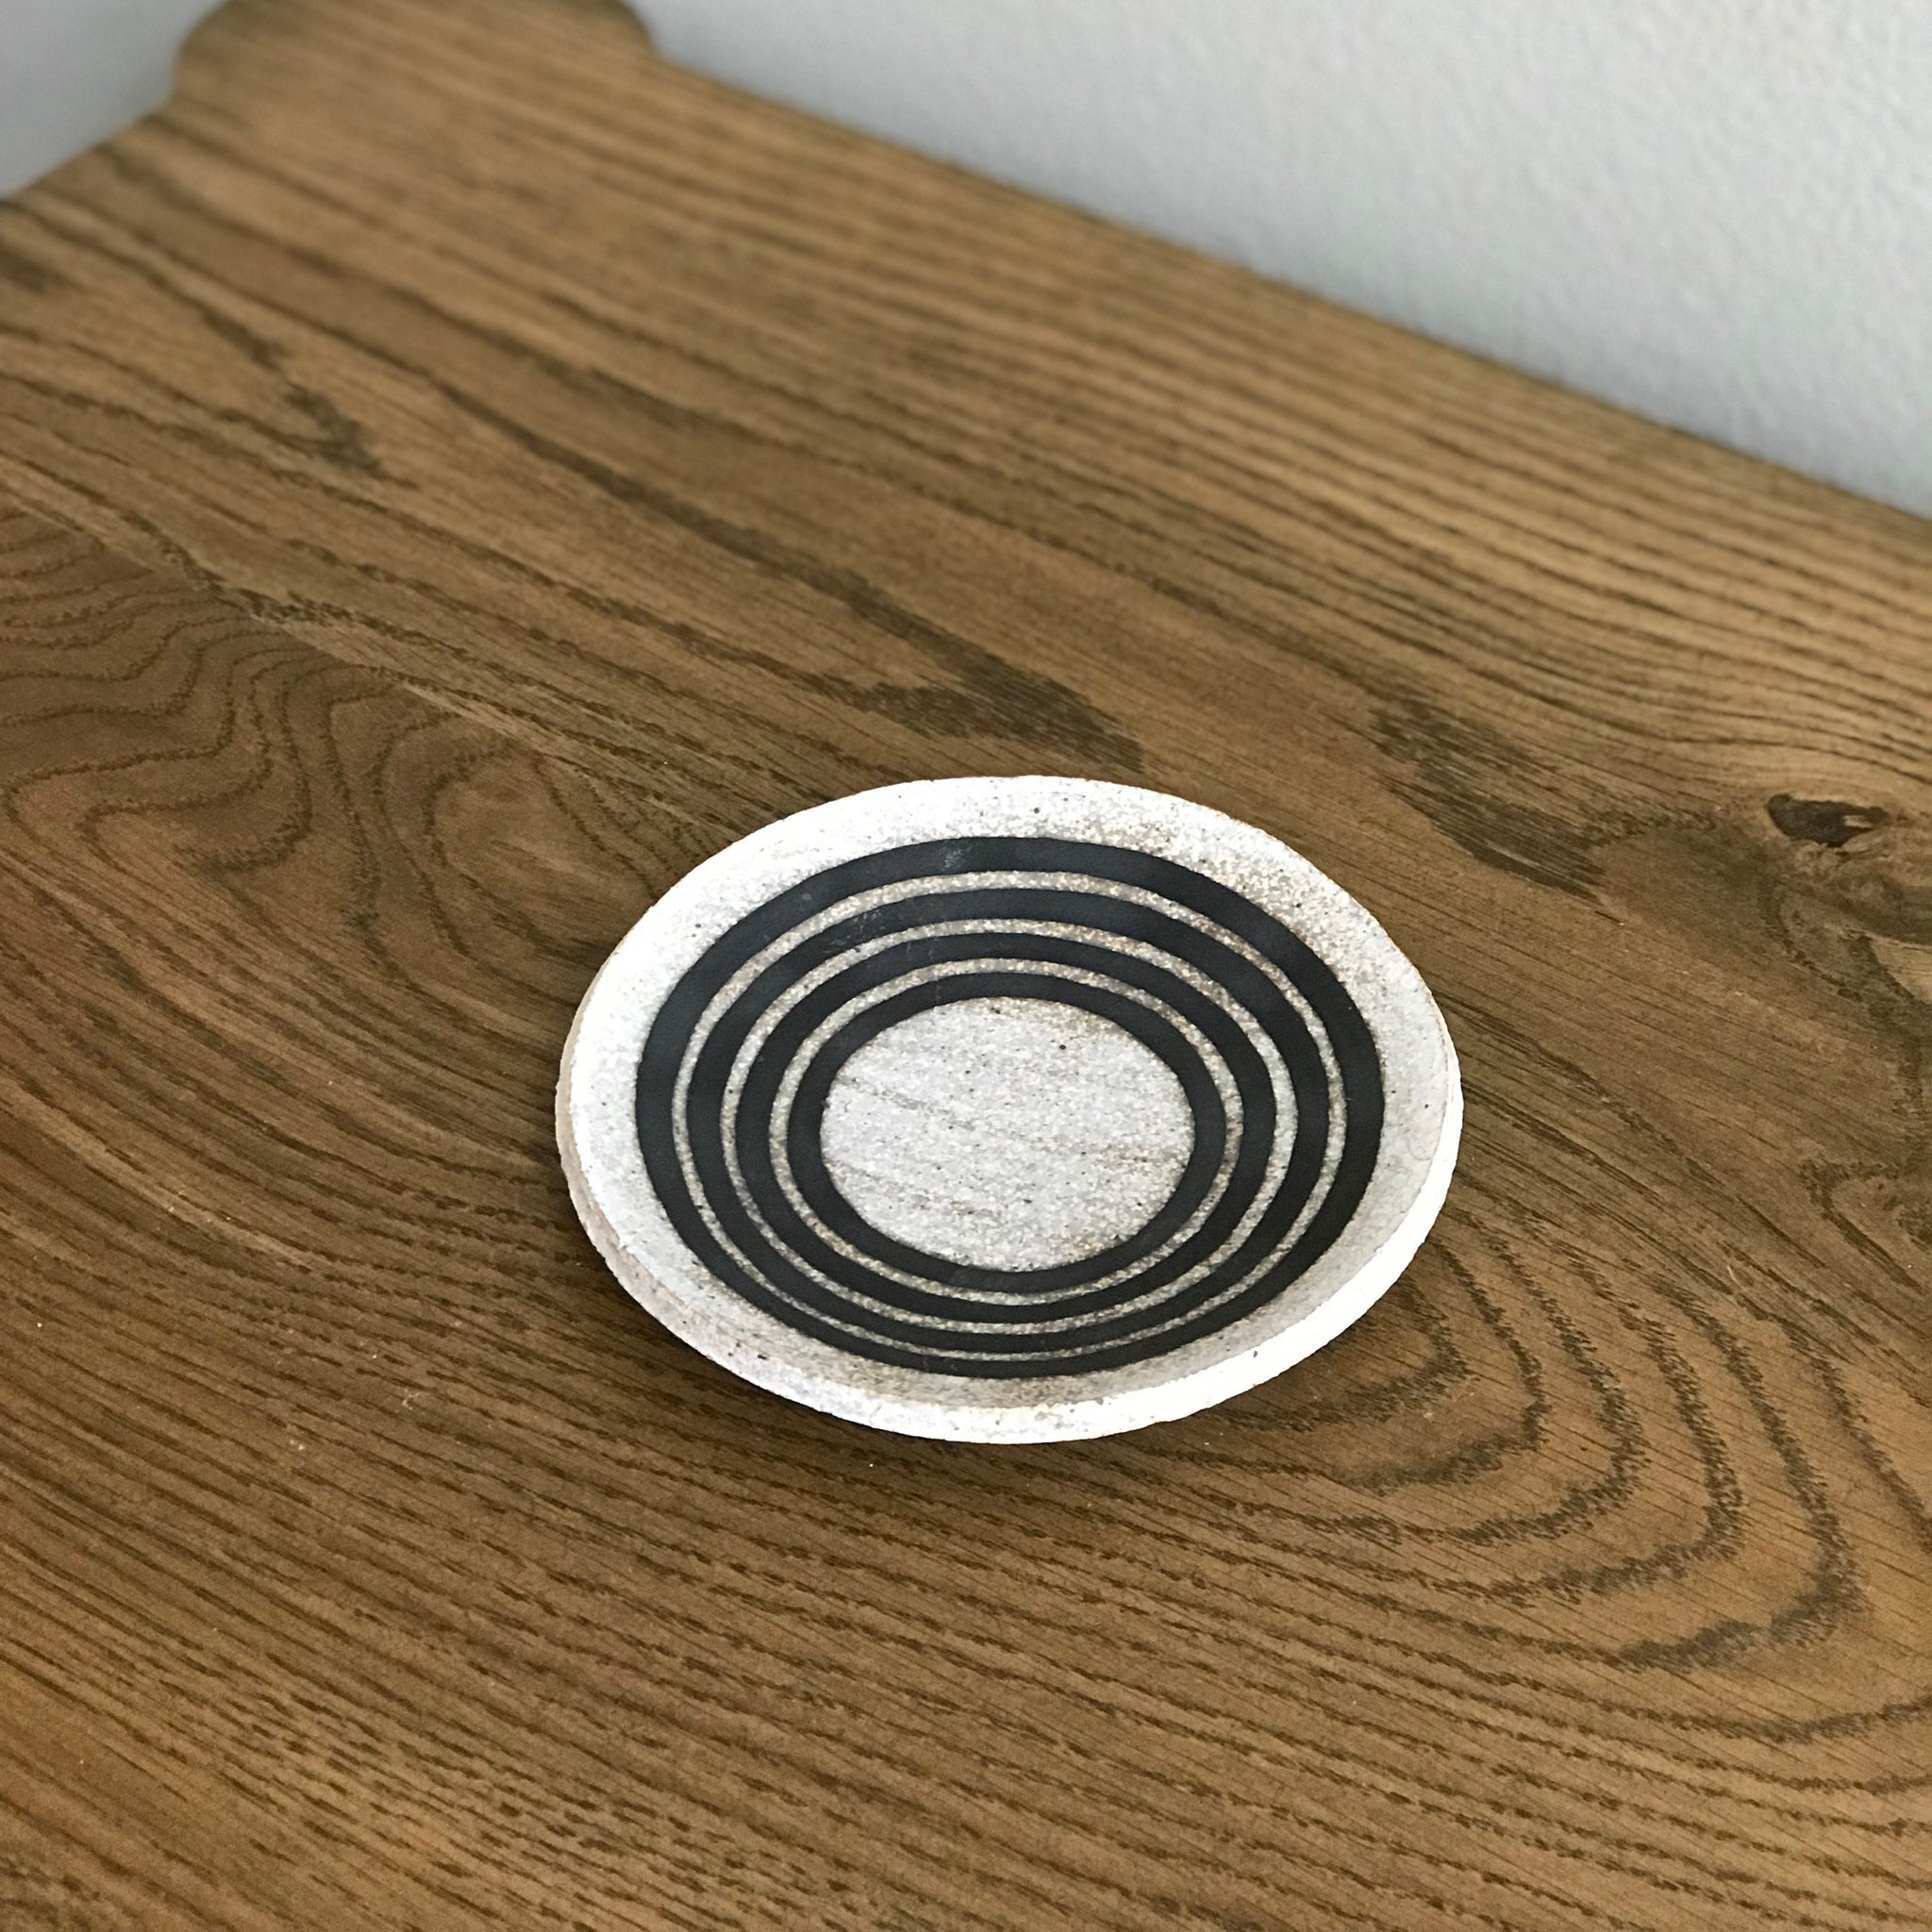 BLACK RINGS DISH